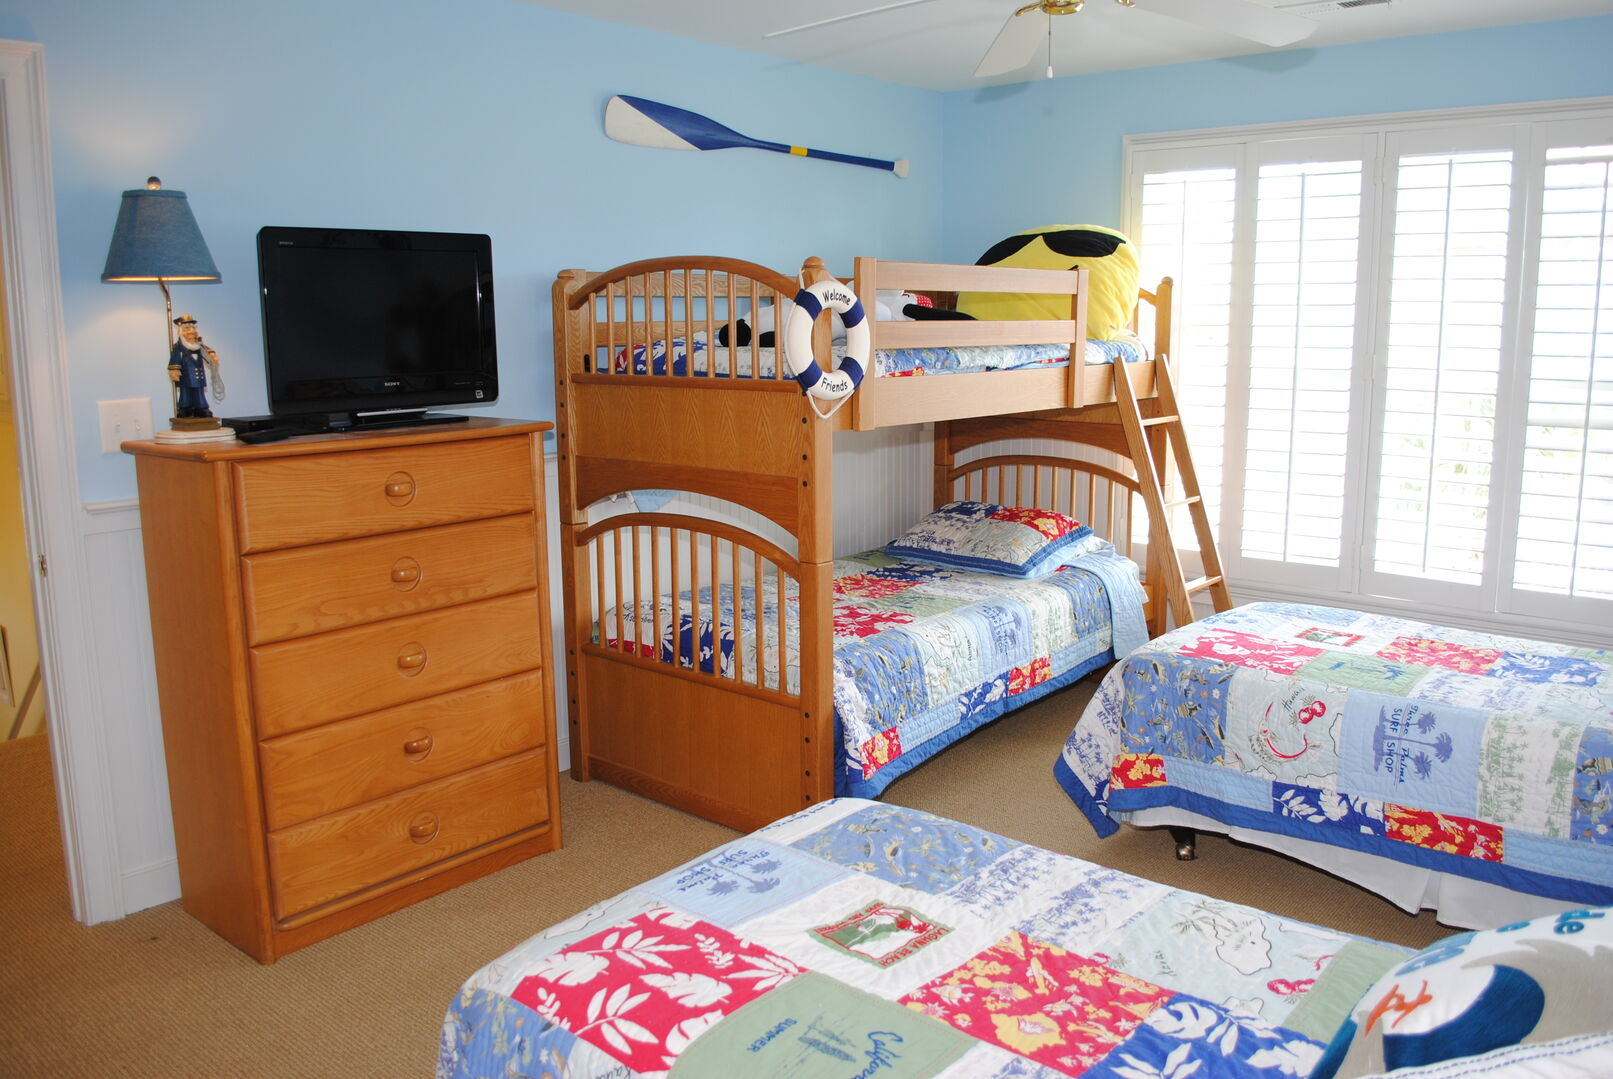 2 Twins and Bunk Bed - Second Floor